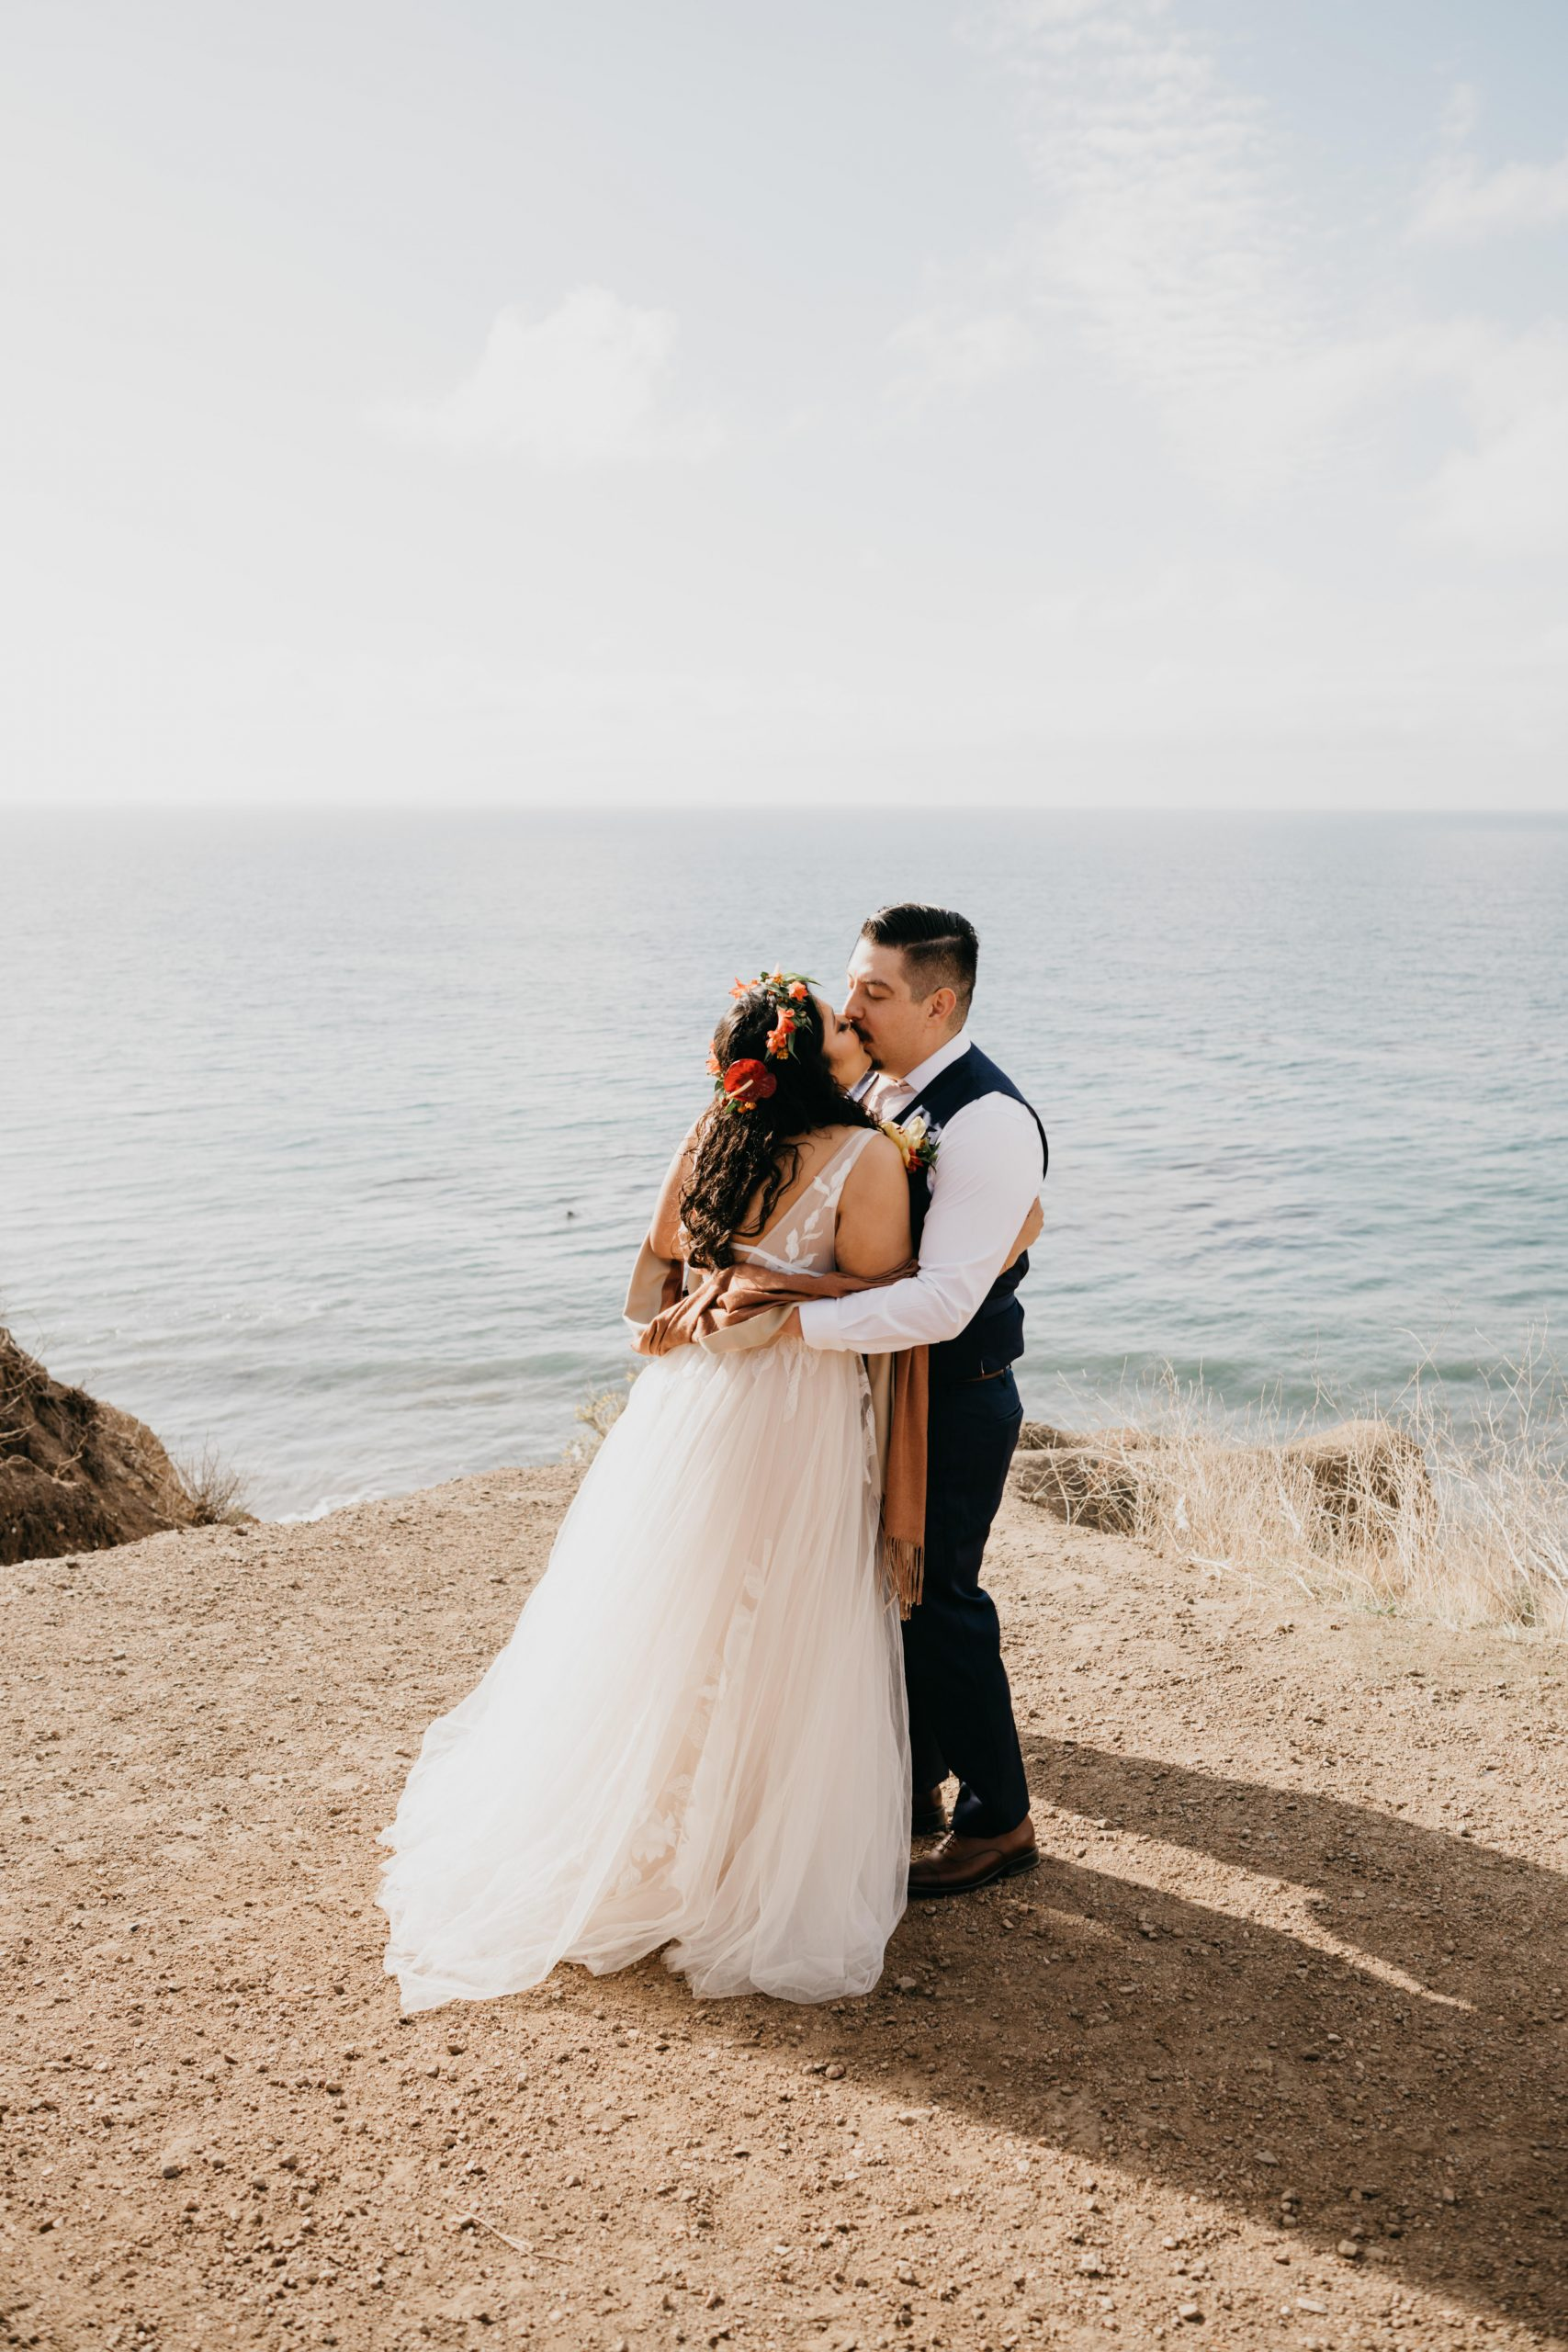 El Matador Beach Elopement in Malibu first kiss, image by Fatima Elreda Photo